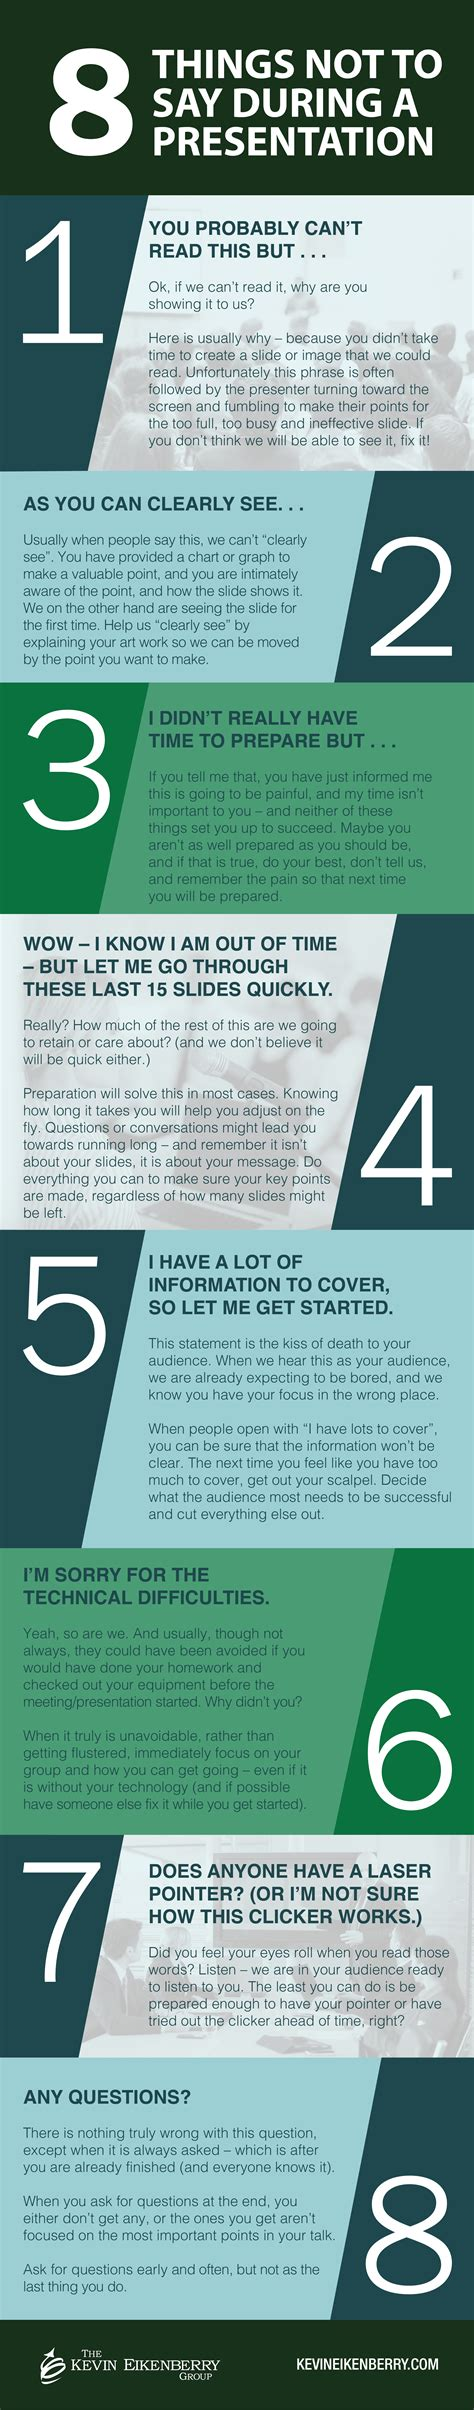 8 Things To Say During by 8 Things Not To Say During A Presentation